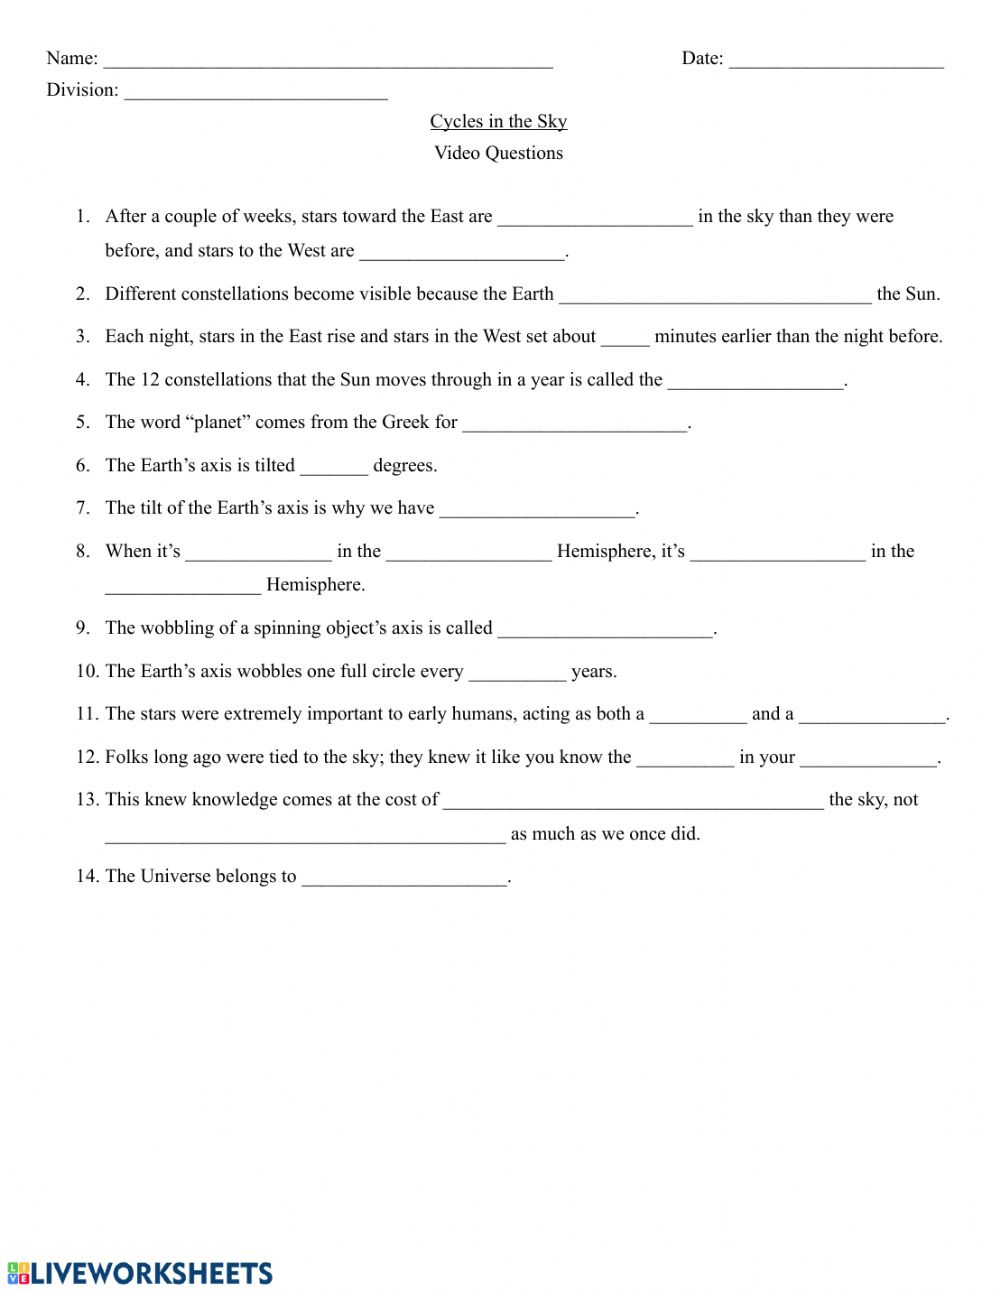 medium resolution of Crash Course Astronomy - Cycles in the Sky worksheet